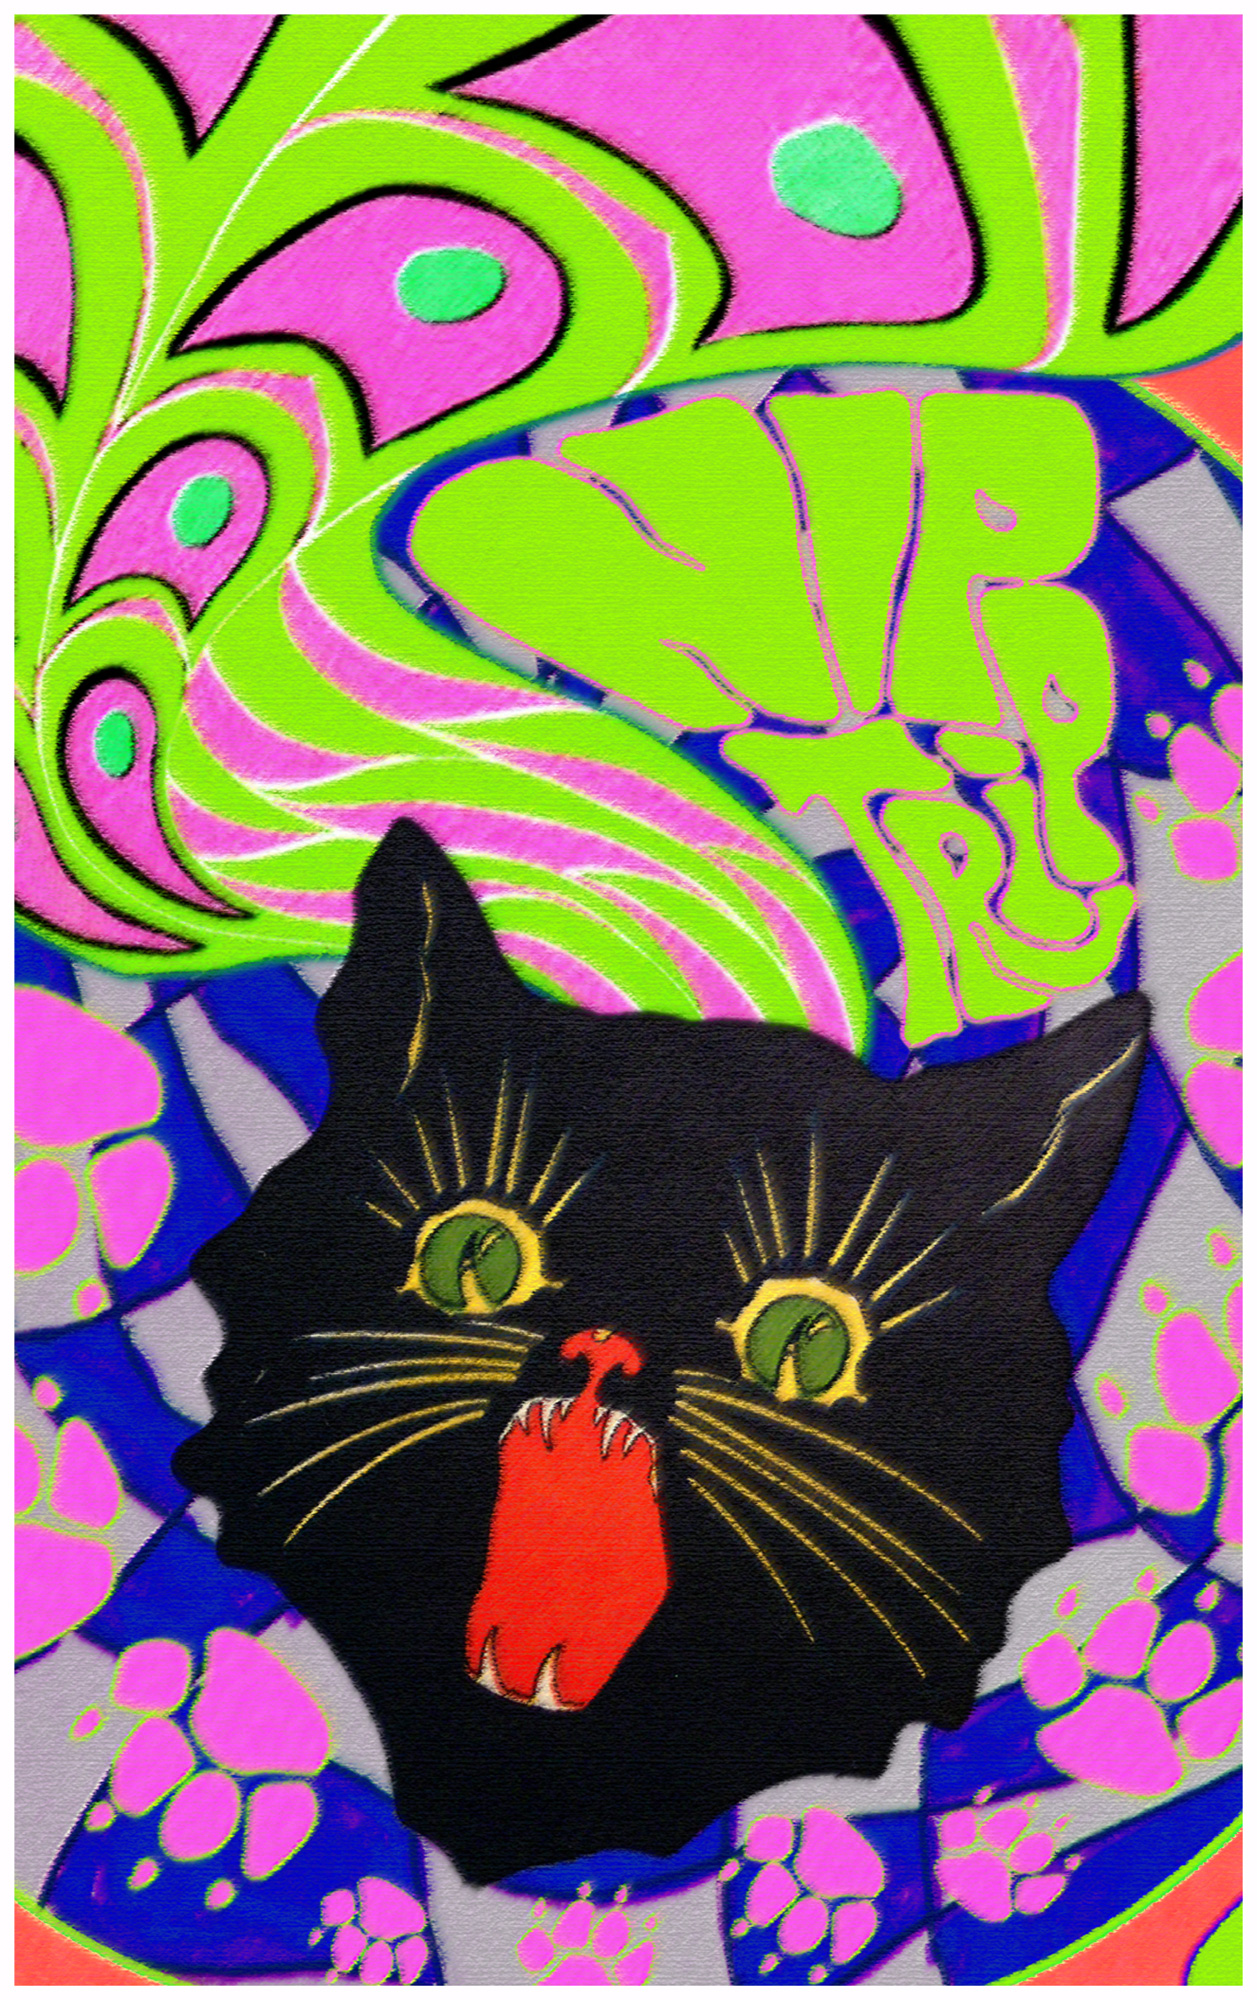 Nip Trip - Black Light Poster